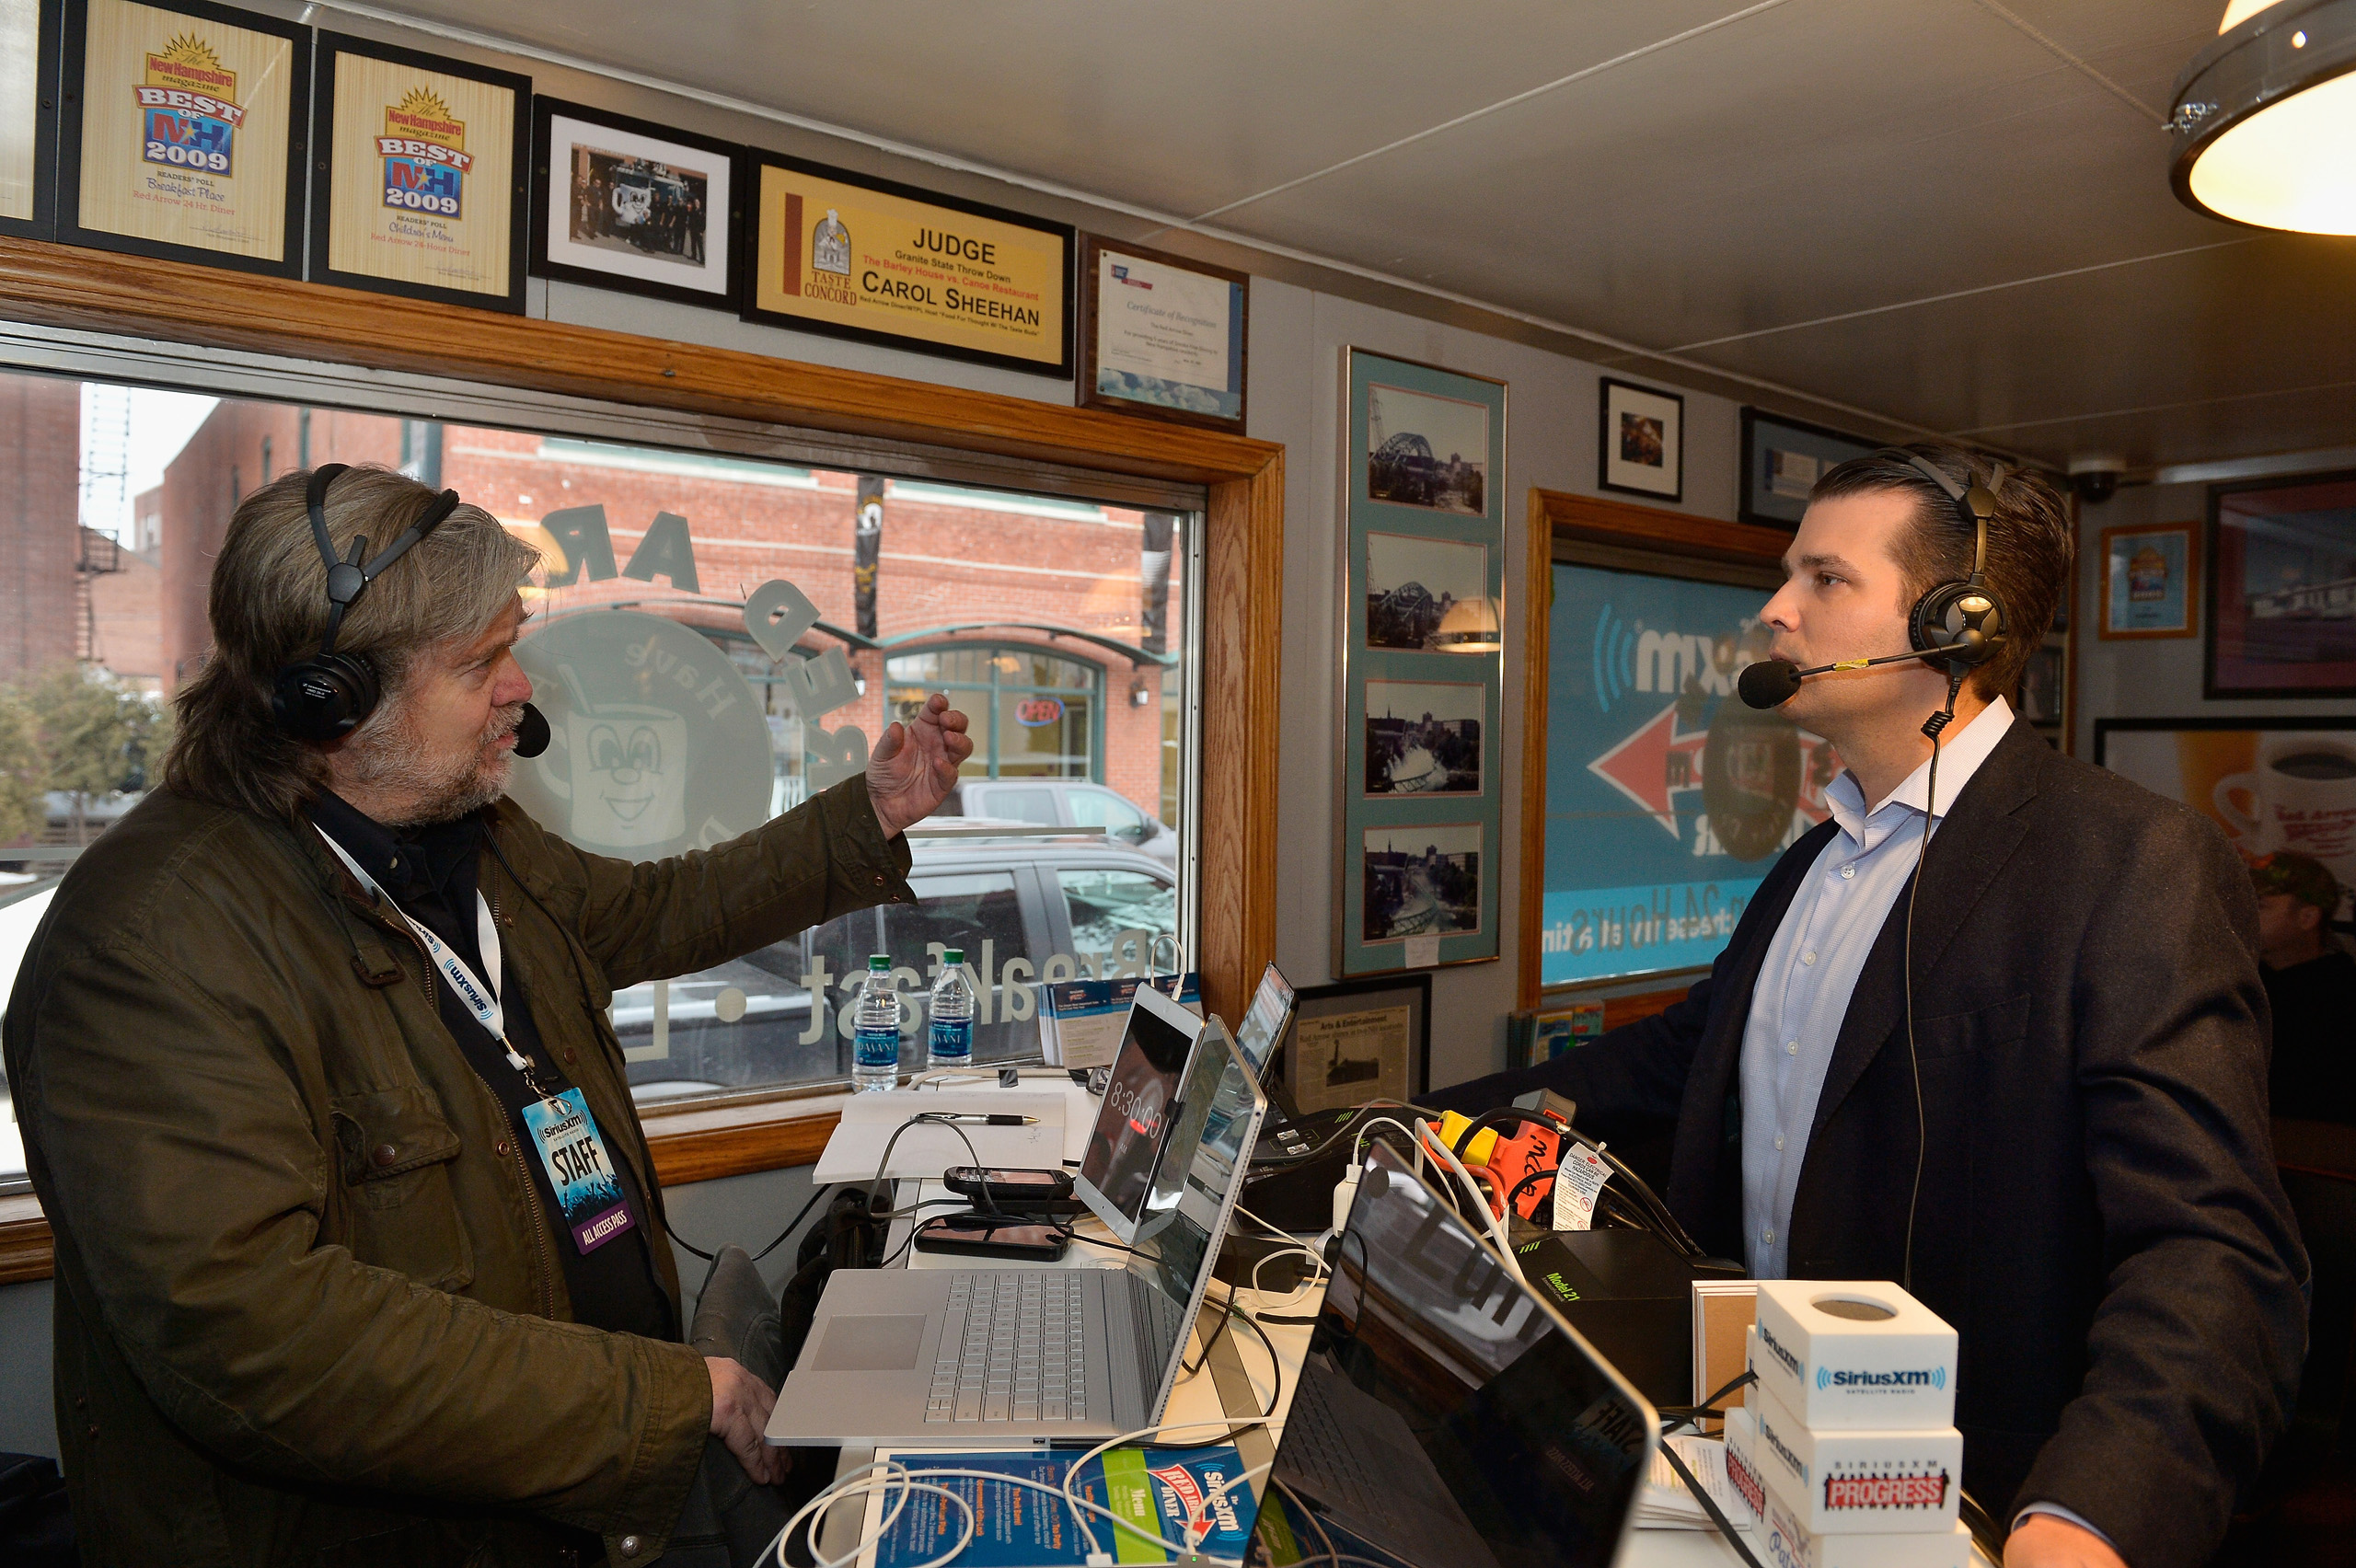 Breitbart News Daily's Steve Bannon interviews Donald Trump, Jr. for SiriusXM Broadcasts' New Hampshire Primary Coverage, live from the iconic Red Arrow Diner in Manchester, N.H., Feb. 8, 2016.